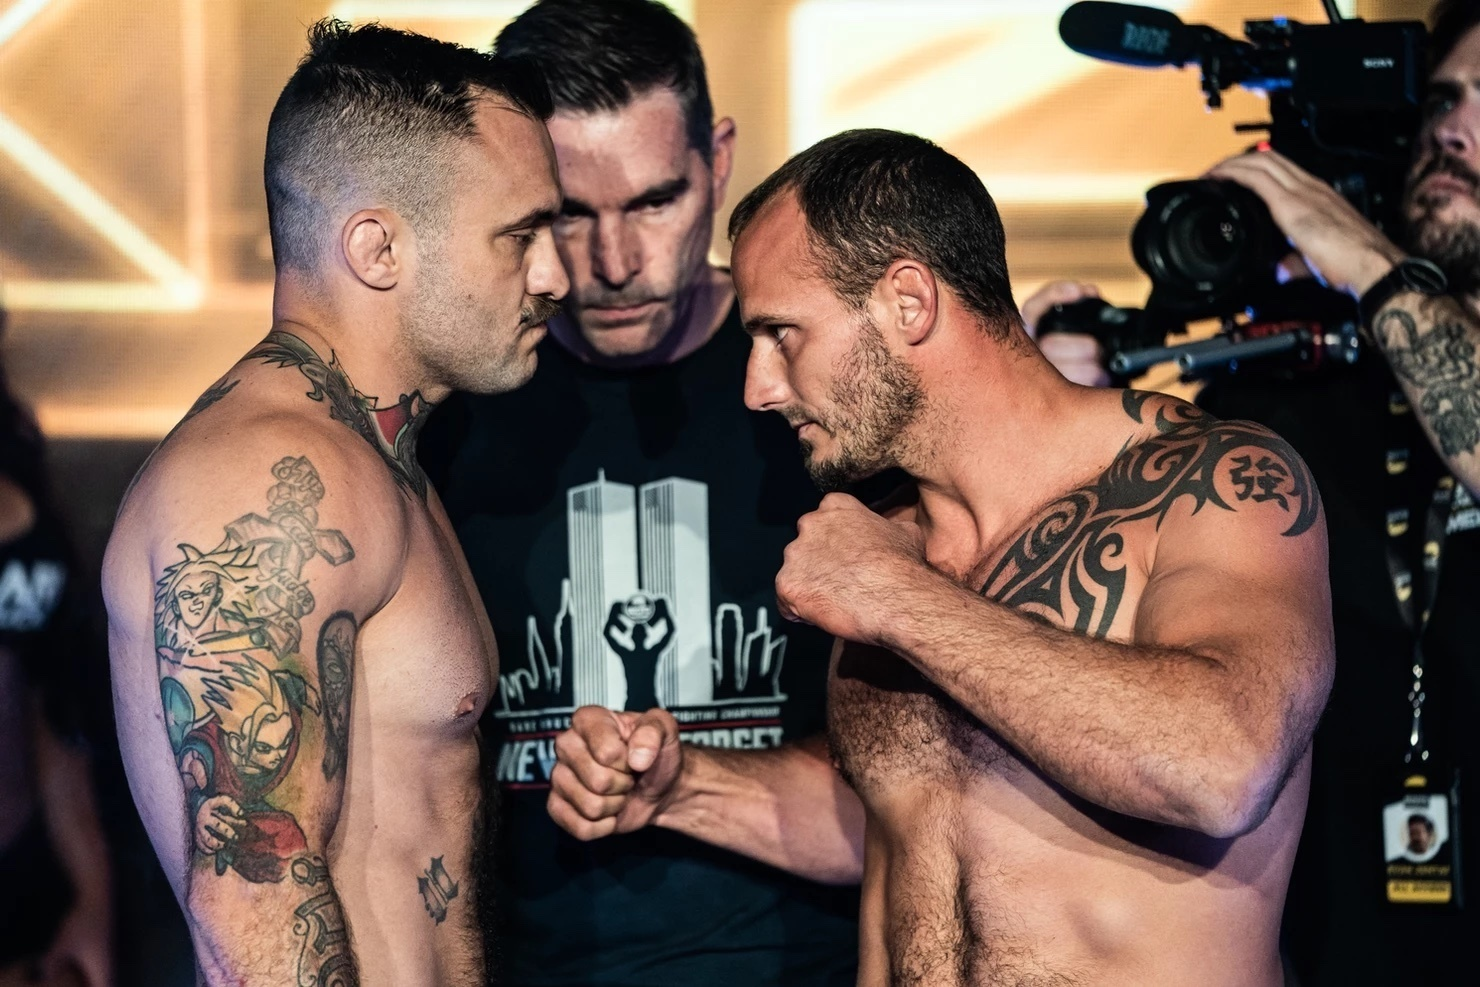 BKFC 21 weigh-in results and video - Cochrane vs. Richman